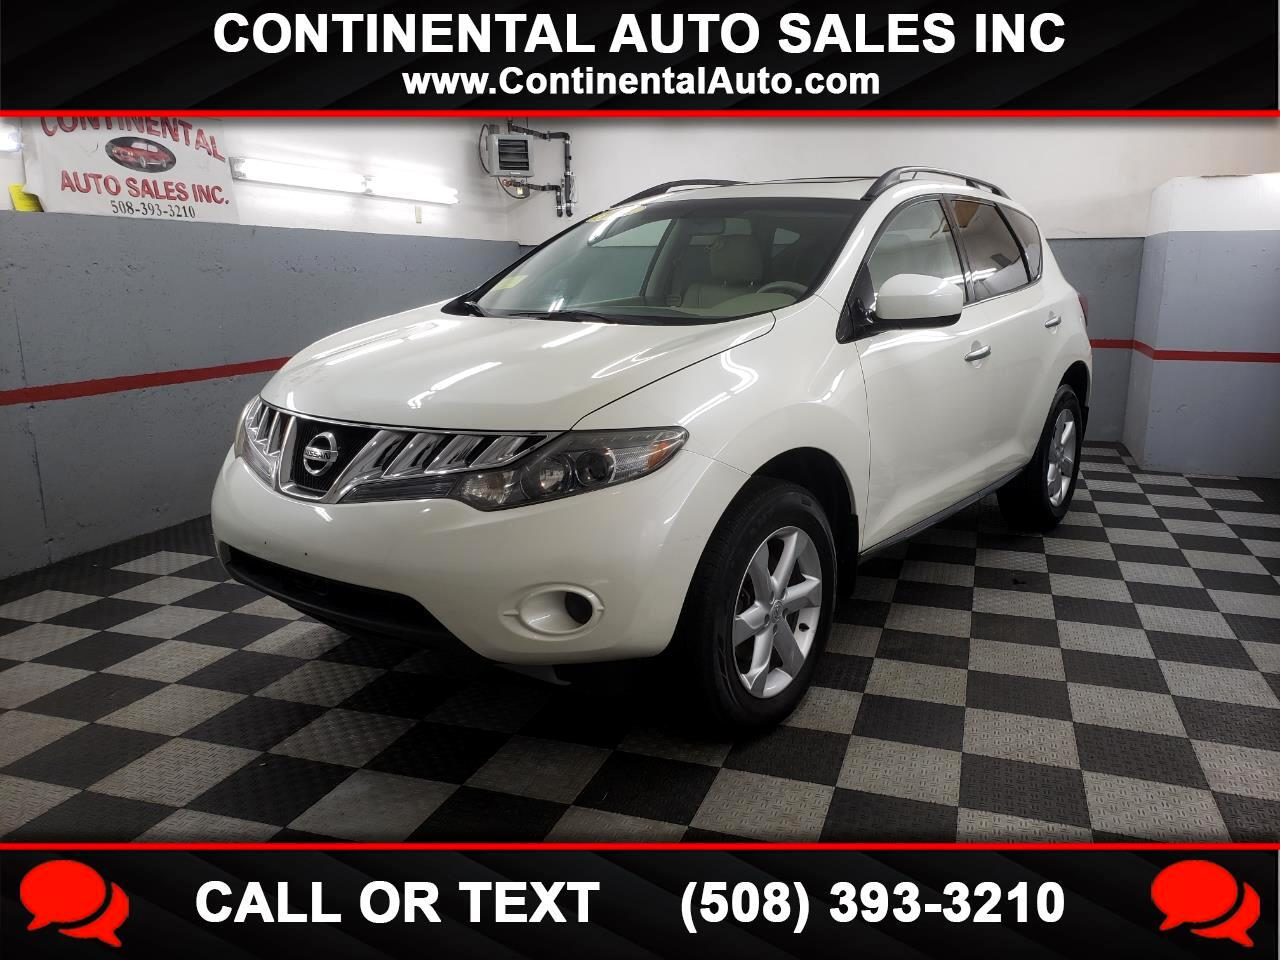 2009 Nissan Murano AWD 4dr S